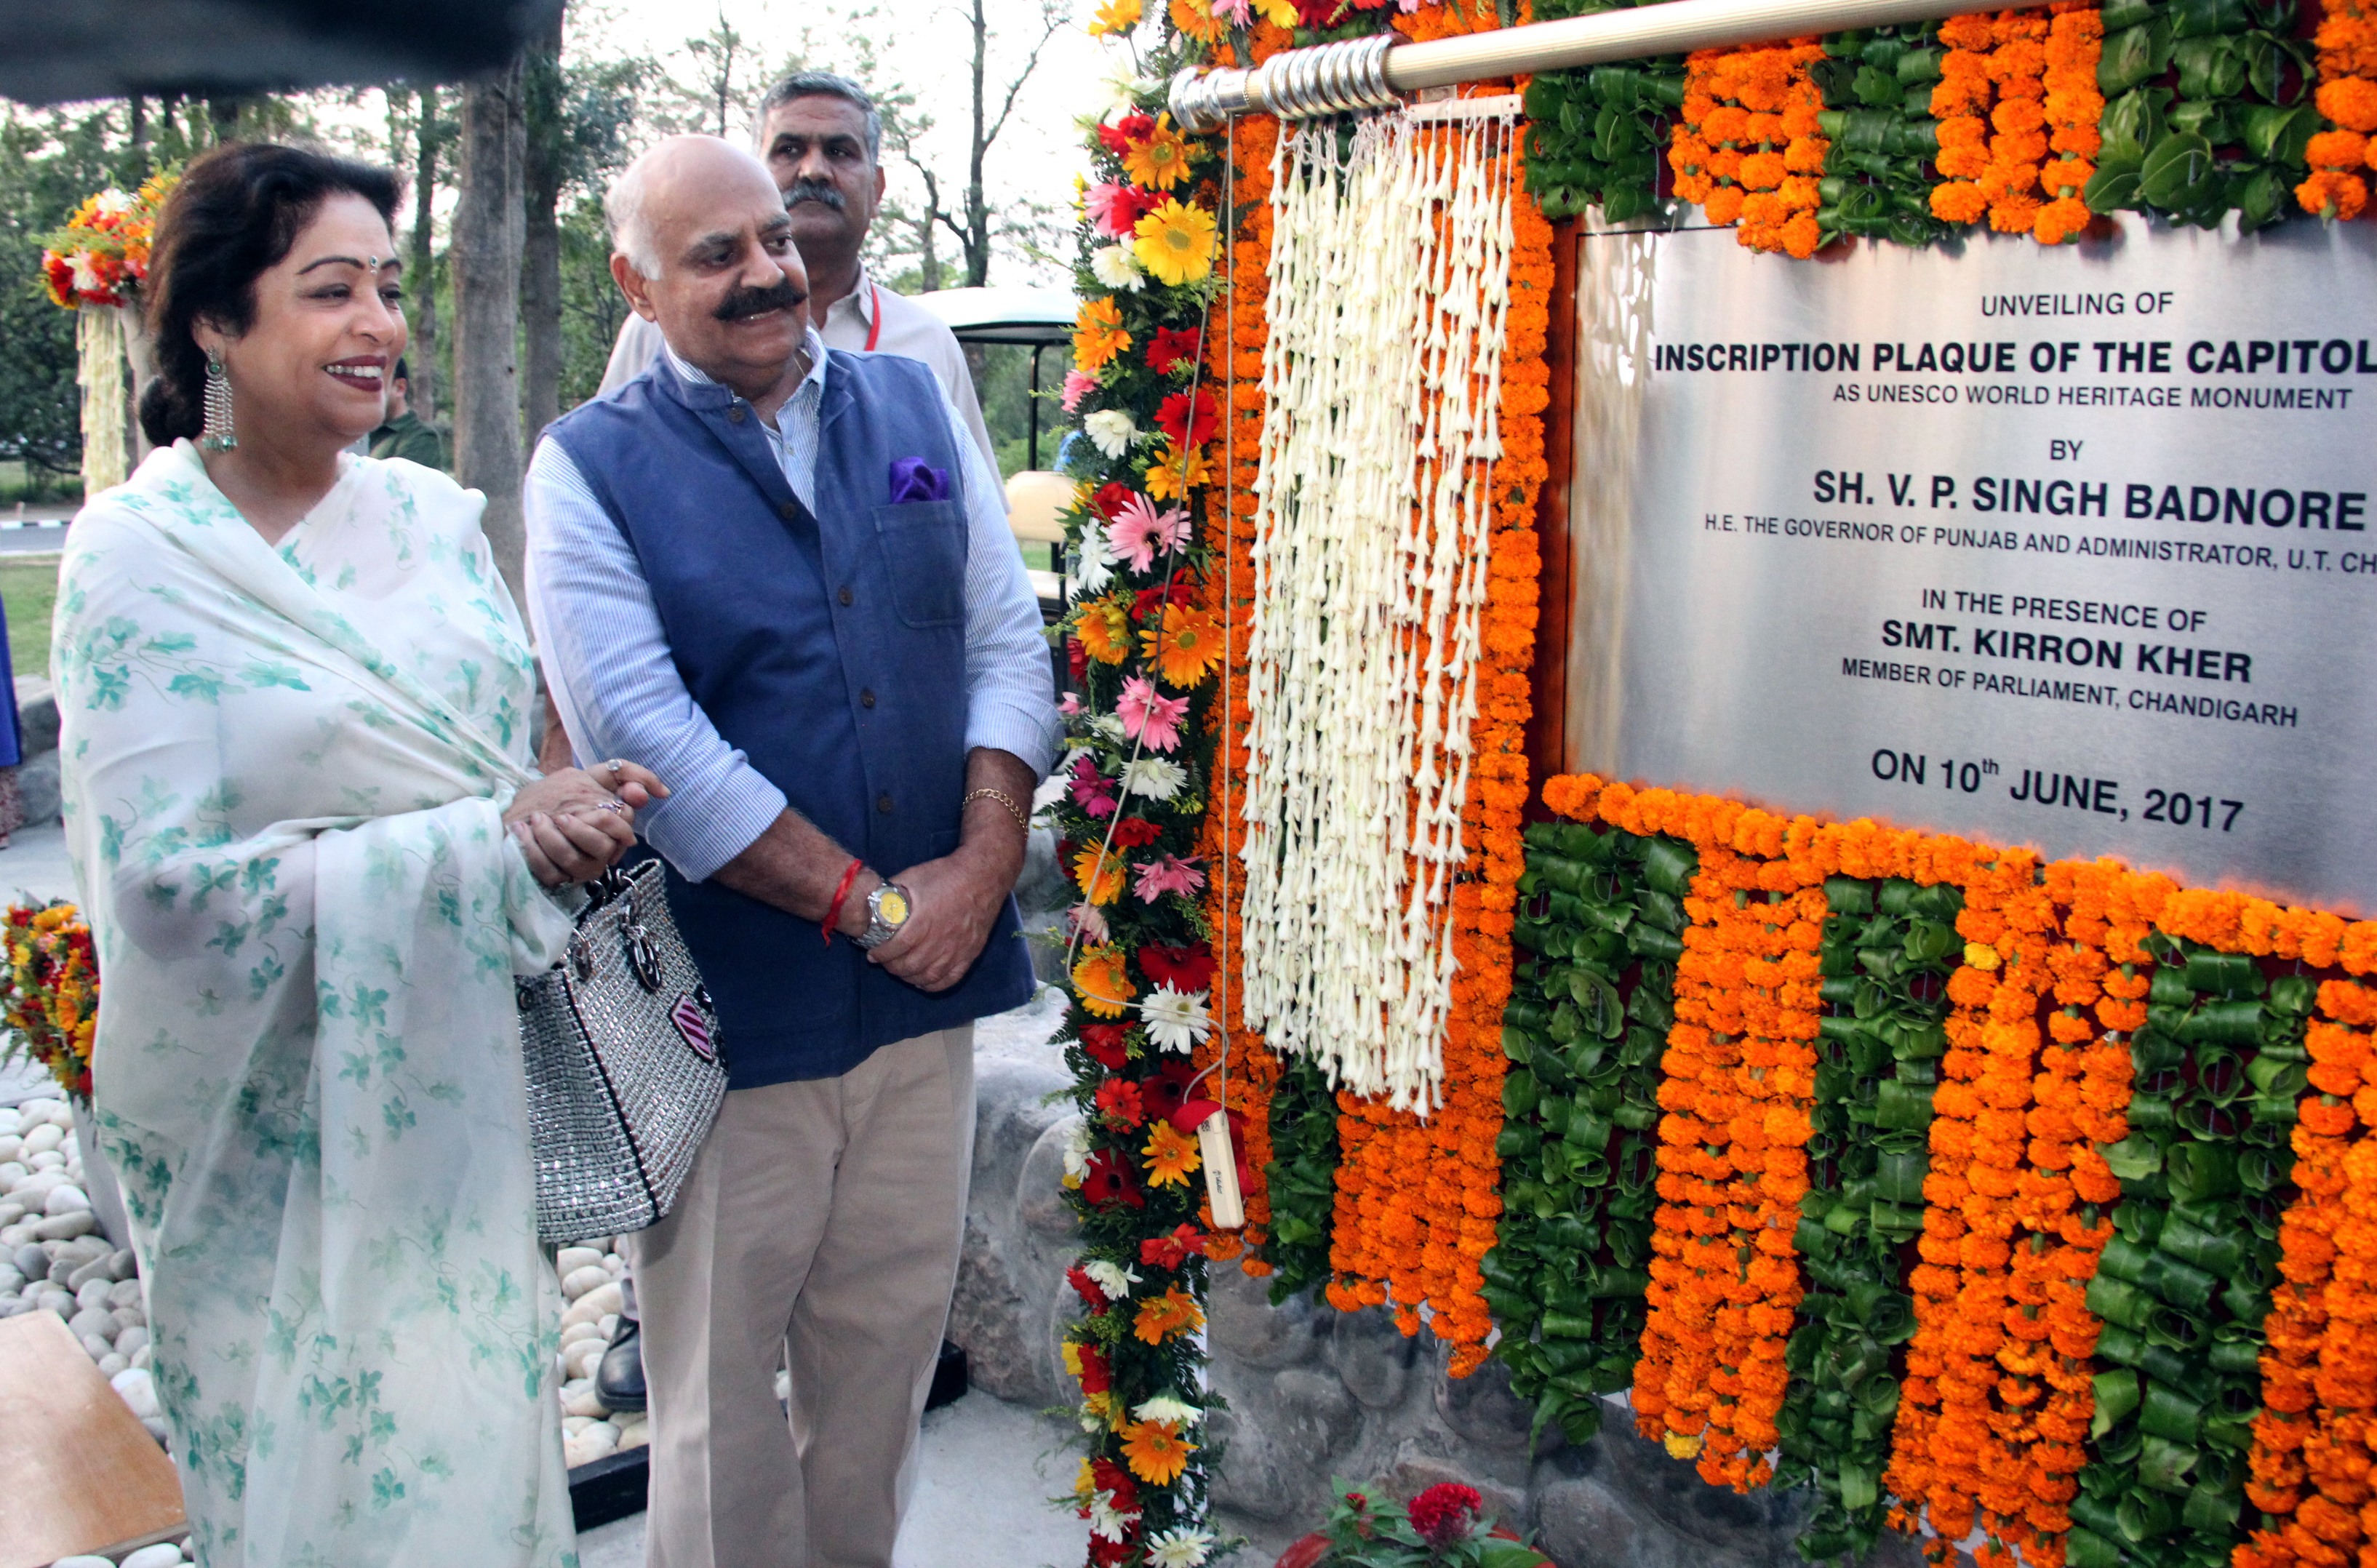 VP Badnore unveiled UNESCO plaque at Chandigarh's Capitol Complex